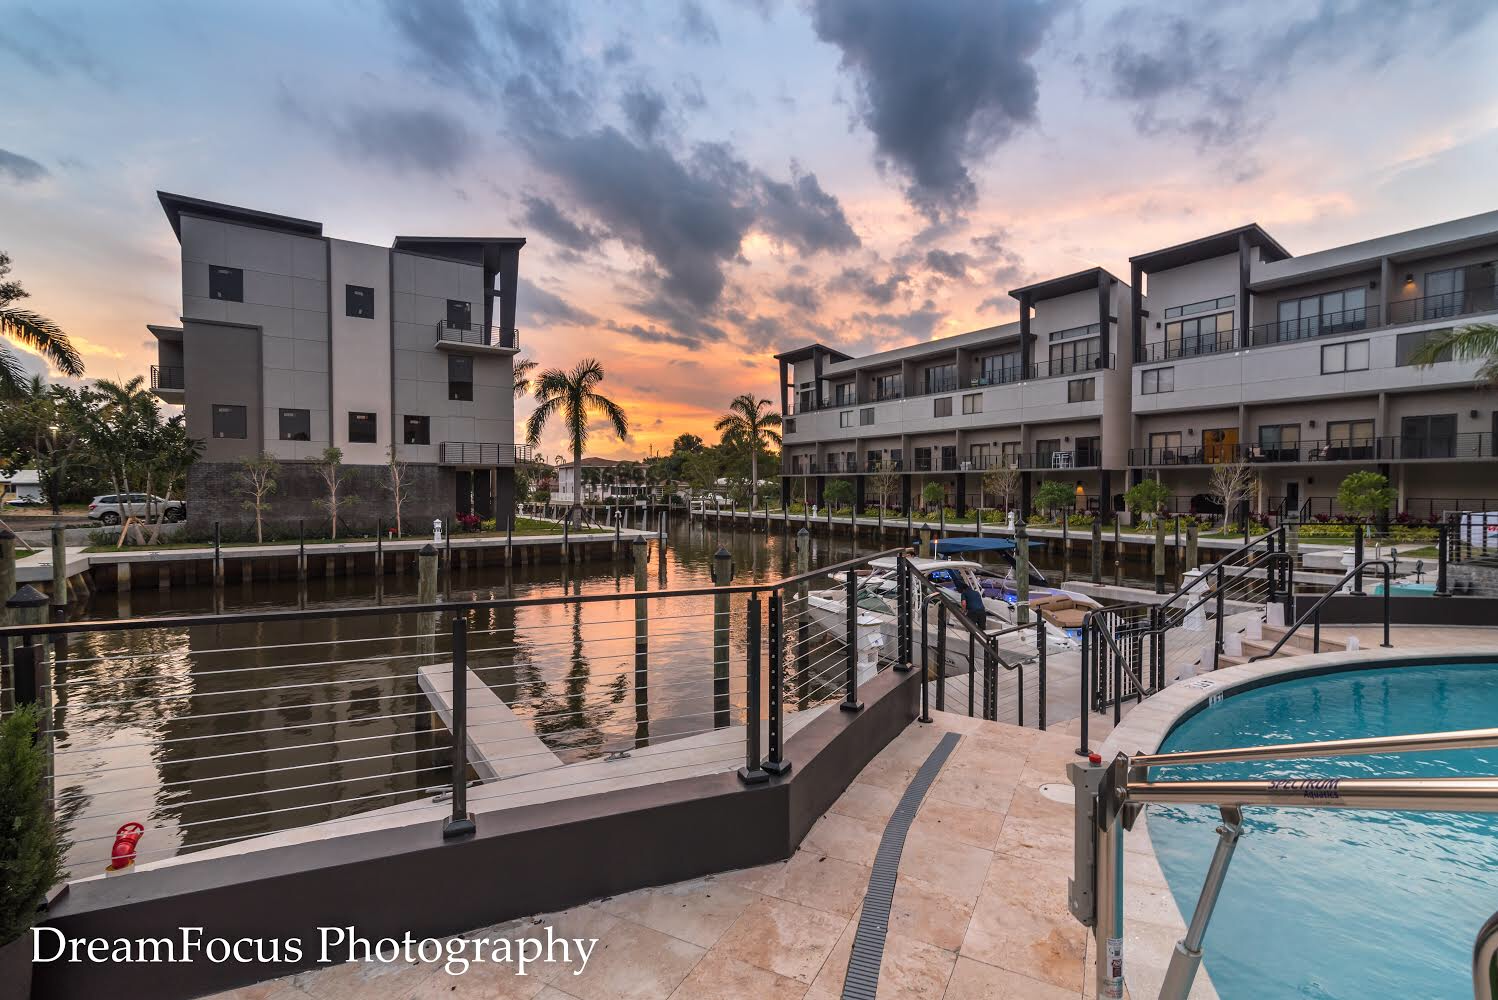 Greetings From Koi Residences And Marina In Pompano Beach Florida Whosaysyoucanthaveitall Pompanobeach K Pompano Beach Florida Lifestyle Open Concept Home